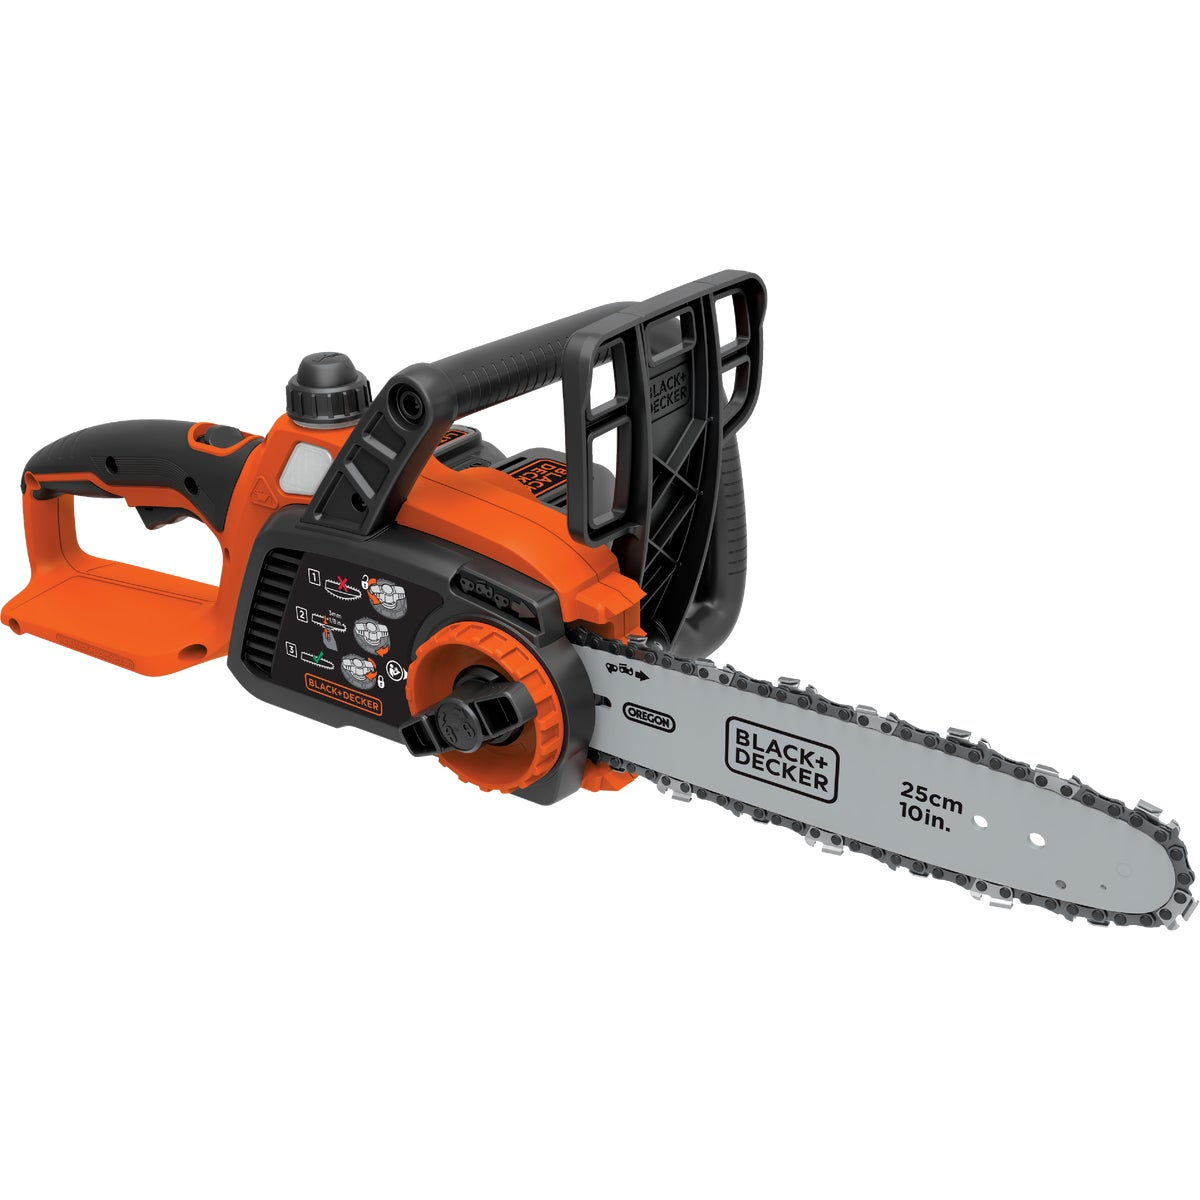 20V LITHIUM CHAINSAW - LCS120 by Black & Decker